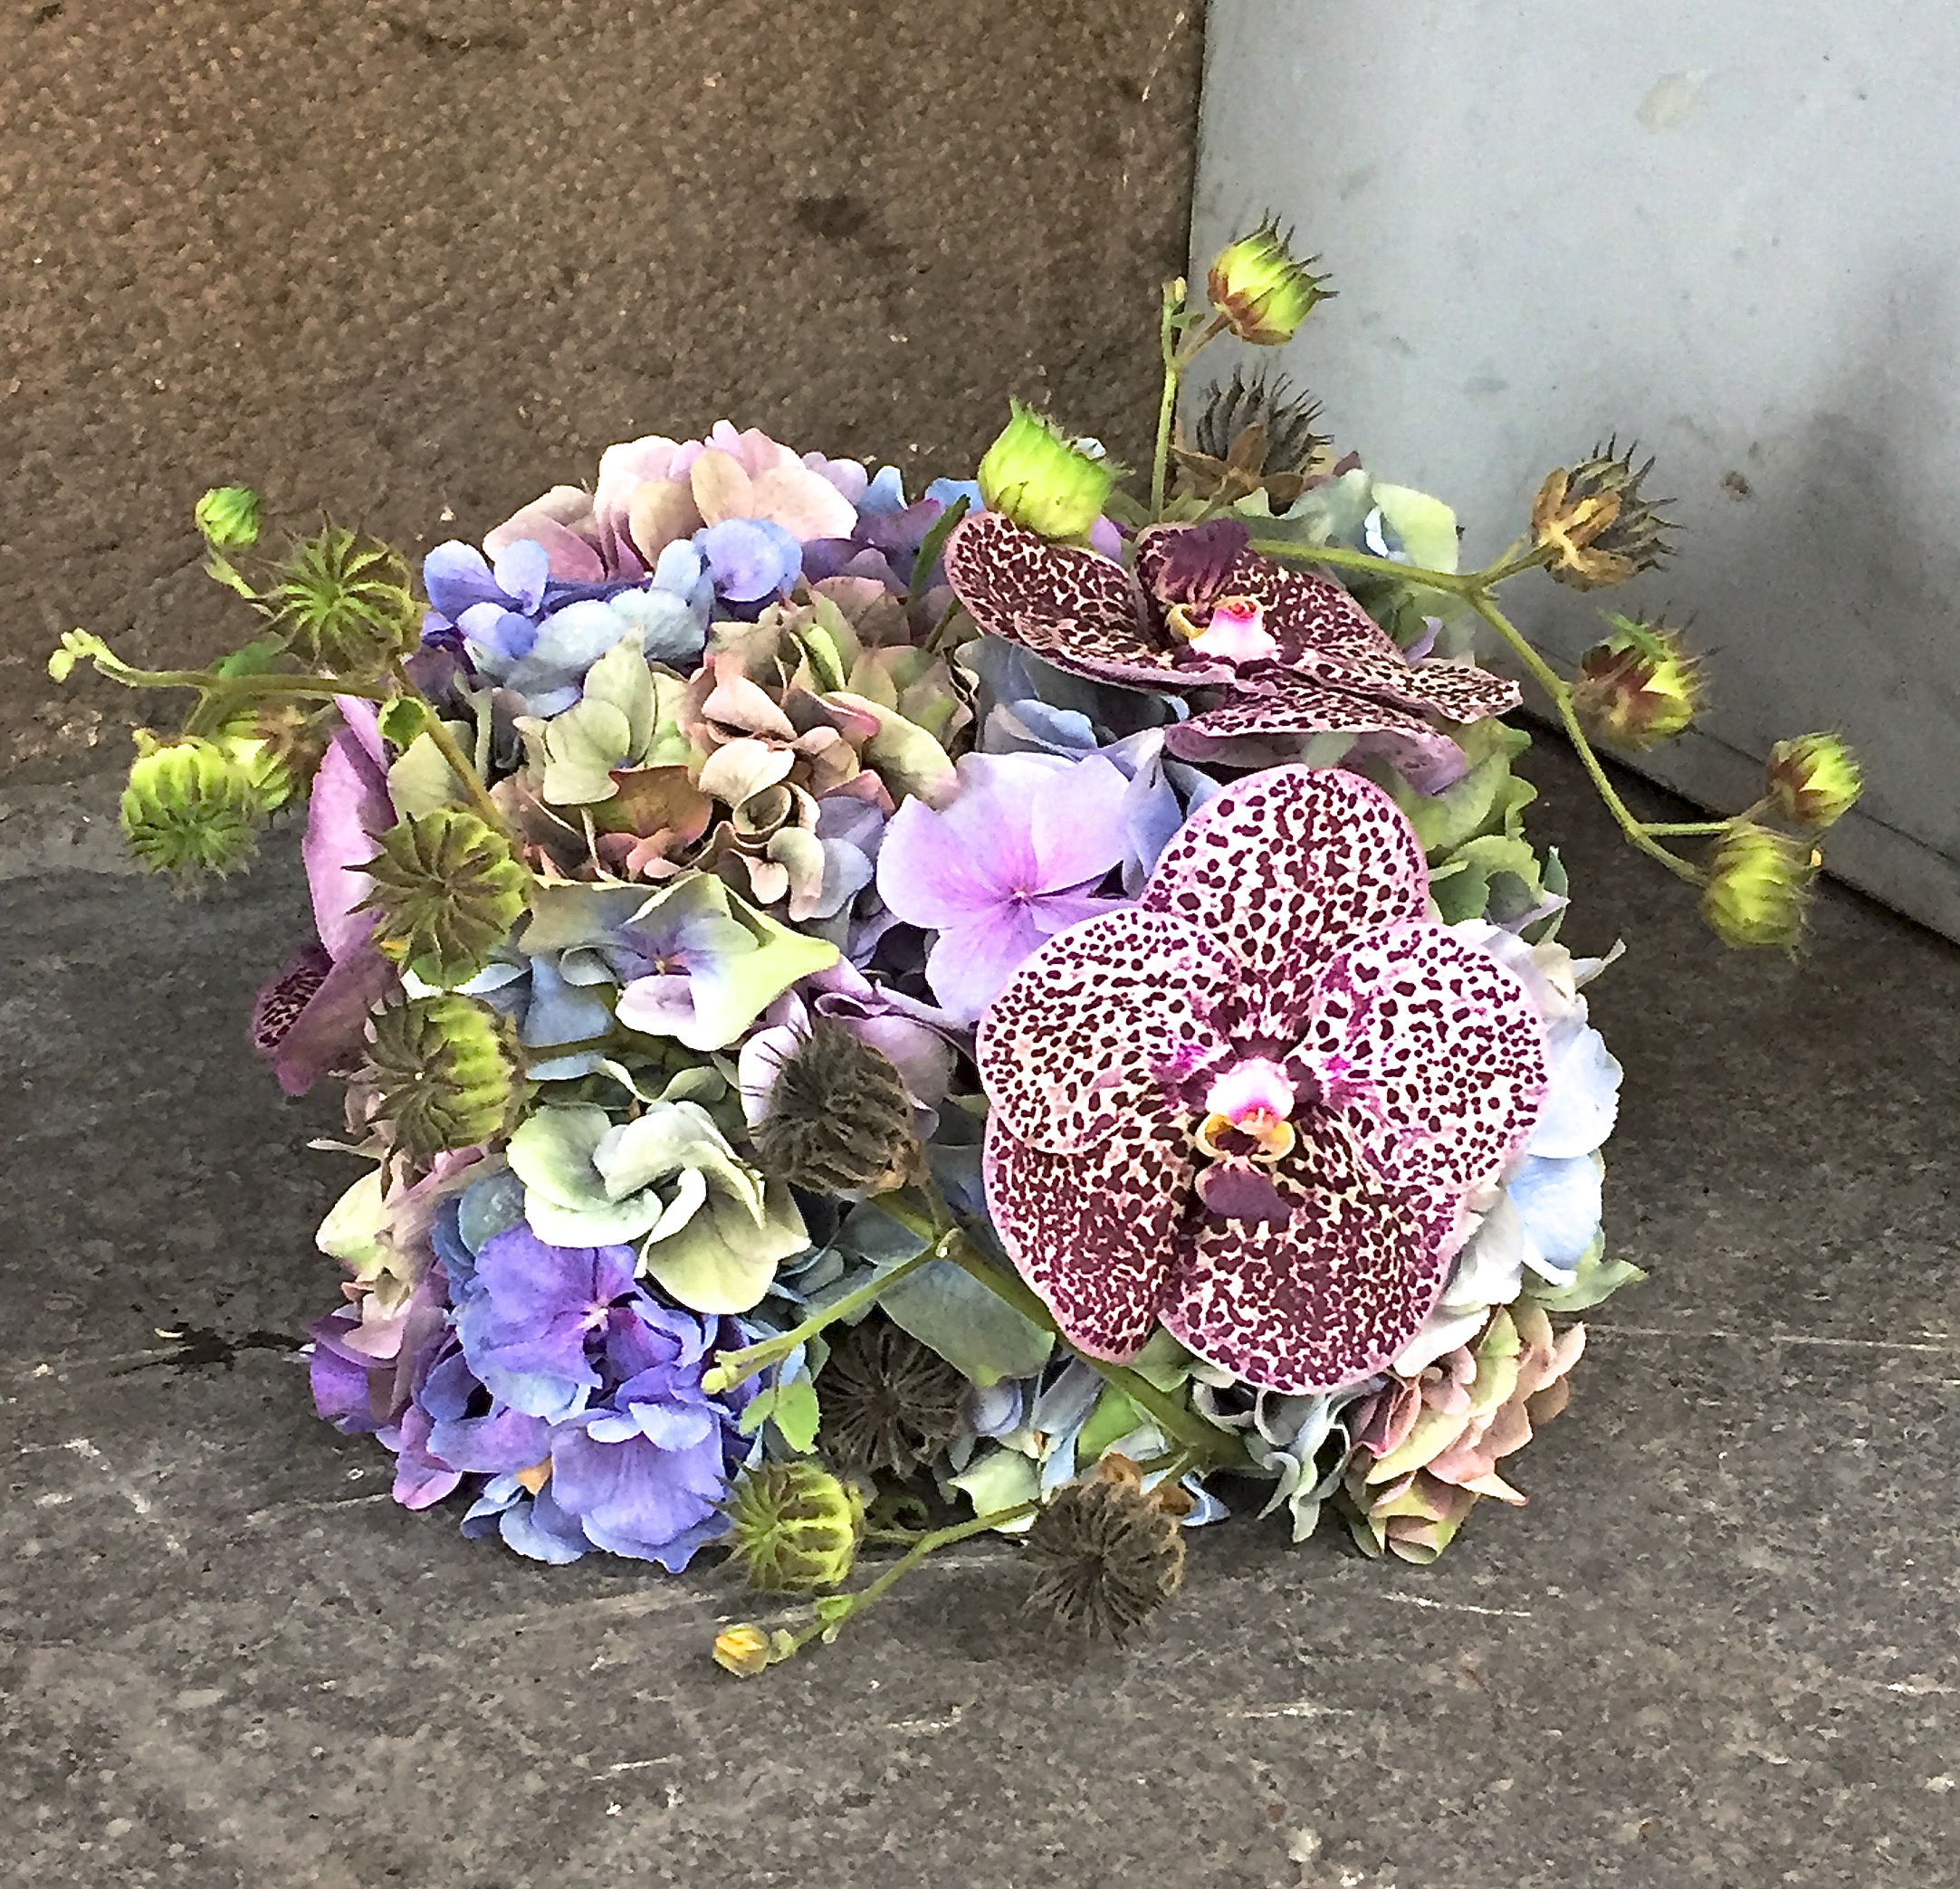 Petit flower box inspired by   Catherine Muller's   concept class in Paris.